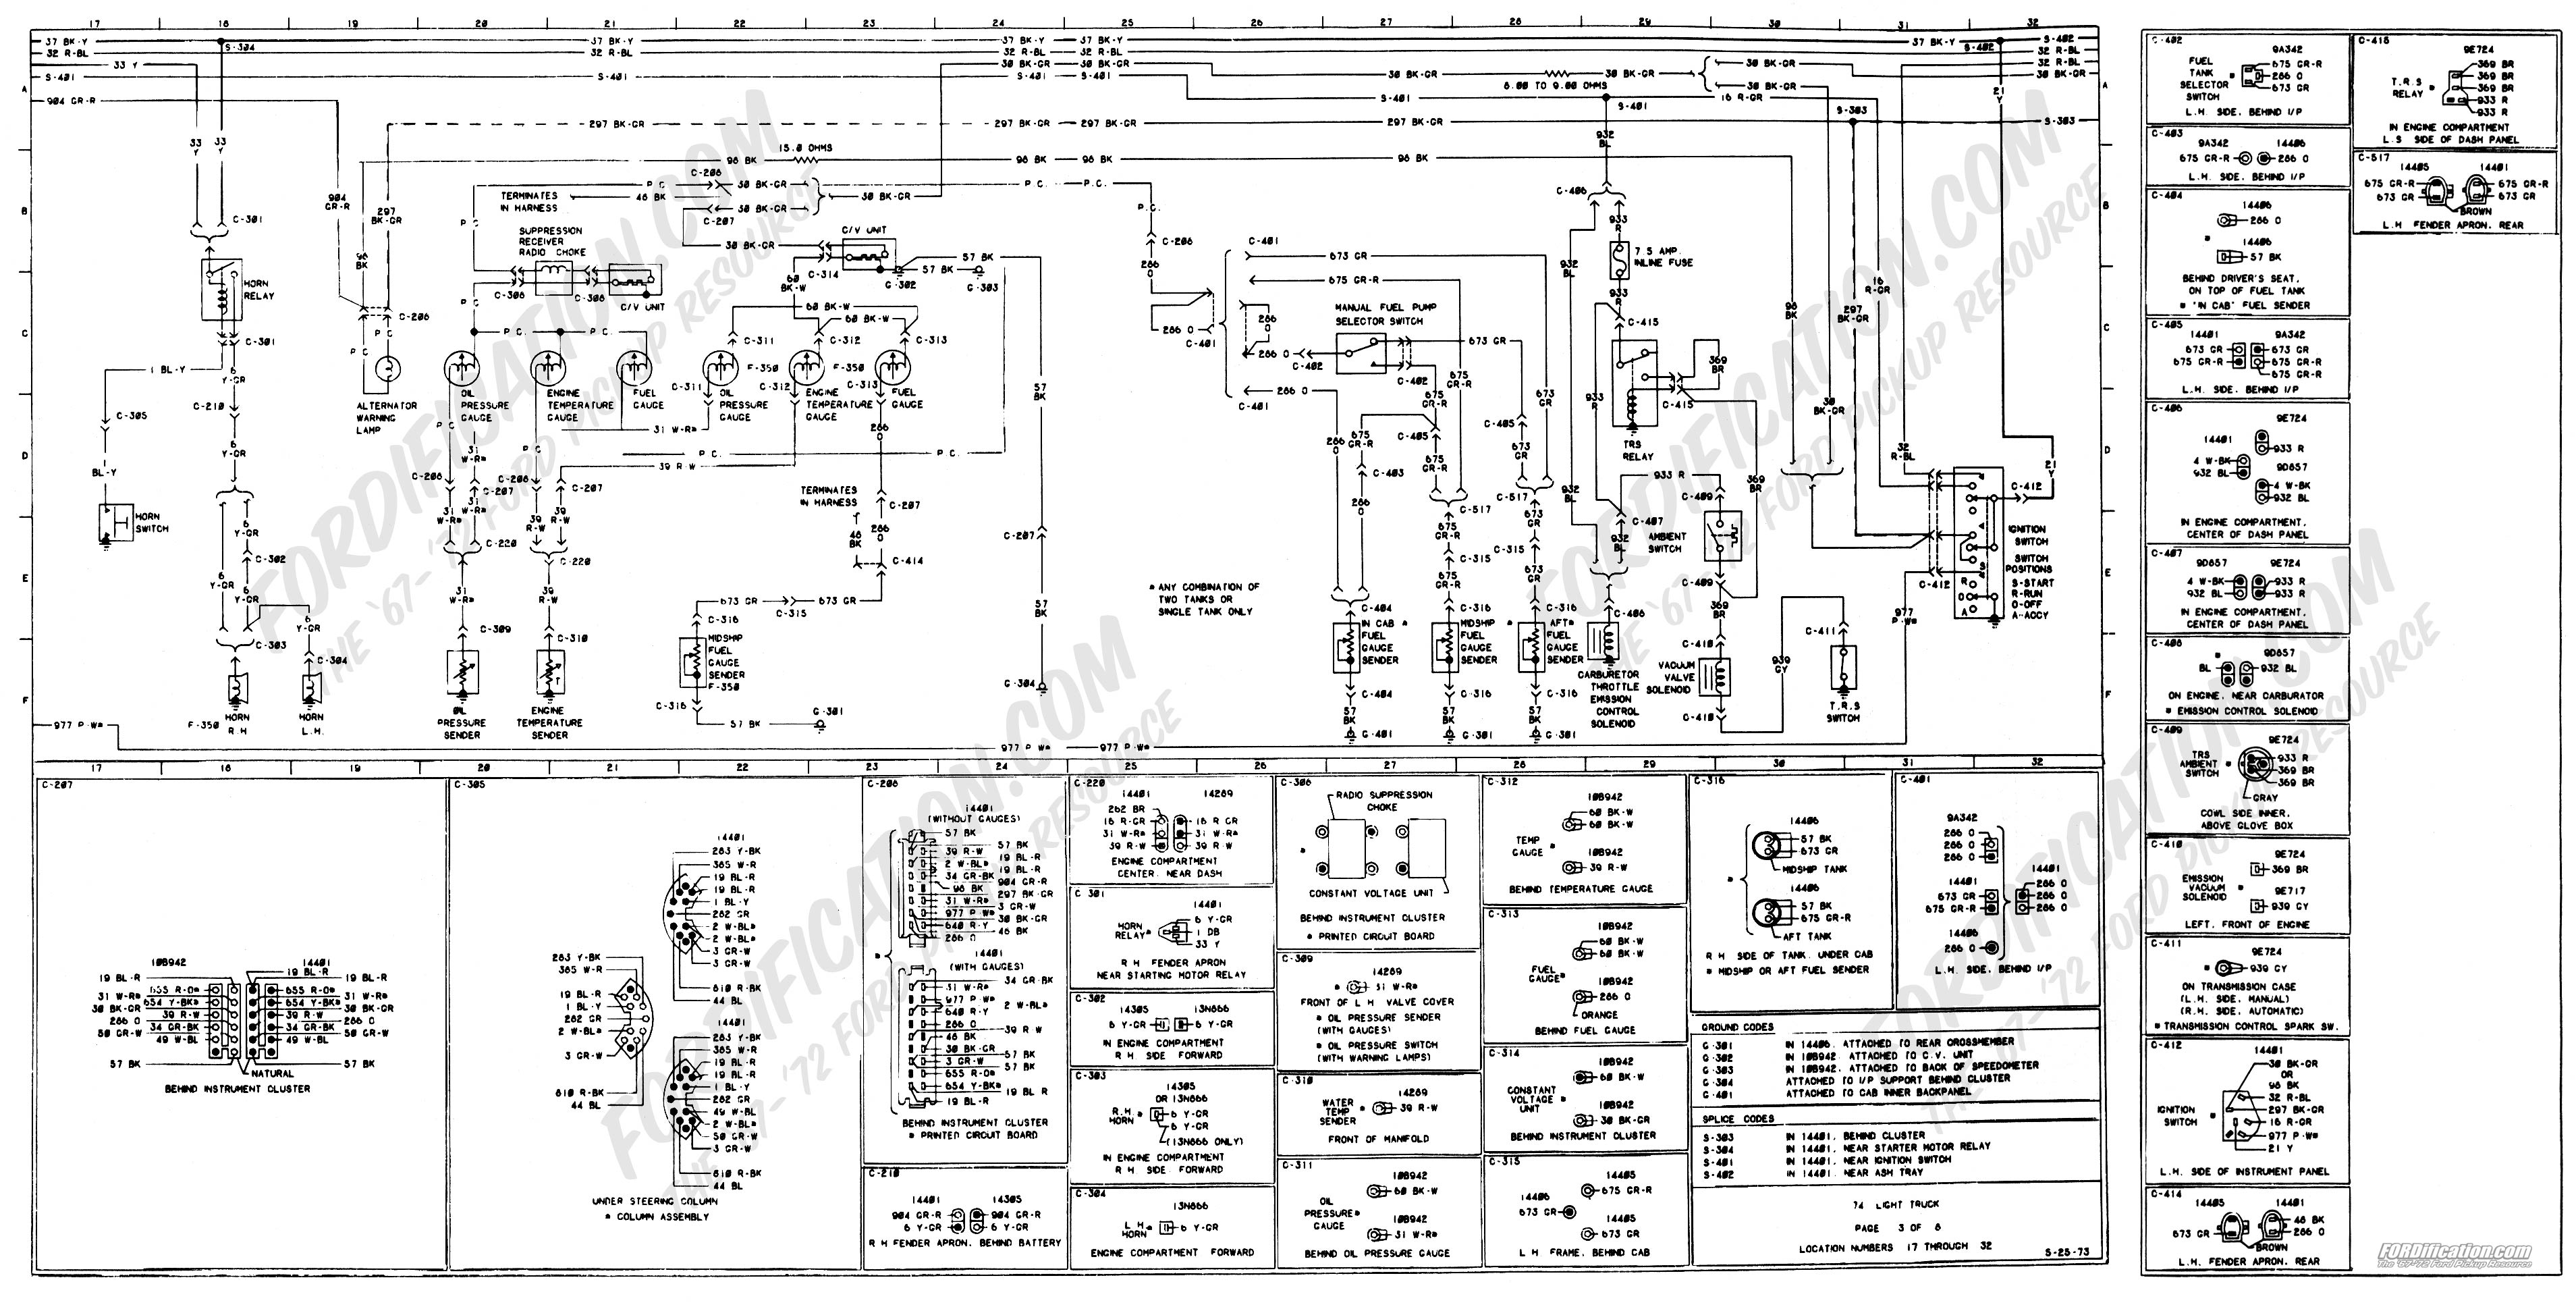 2003 F250 Wiring Schematic Great Design Of Diagram Ford F 250 Trailer 1978 Detailed Schematics Rh Mrskindsclass Com 2004